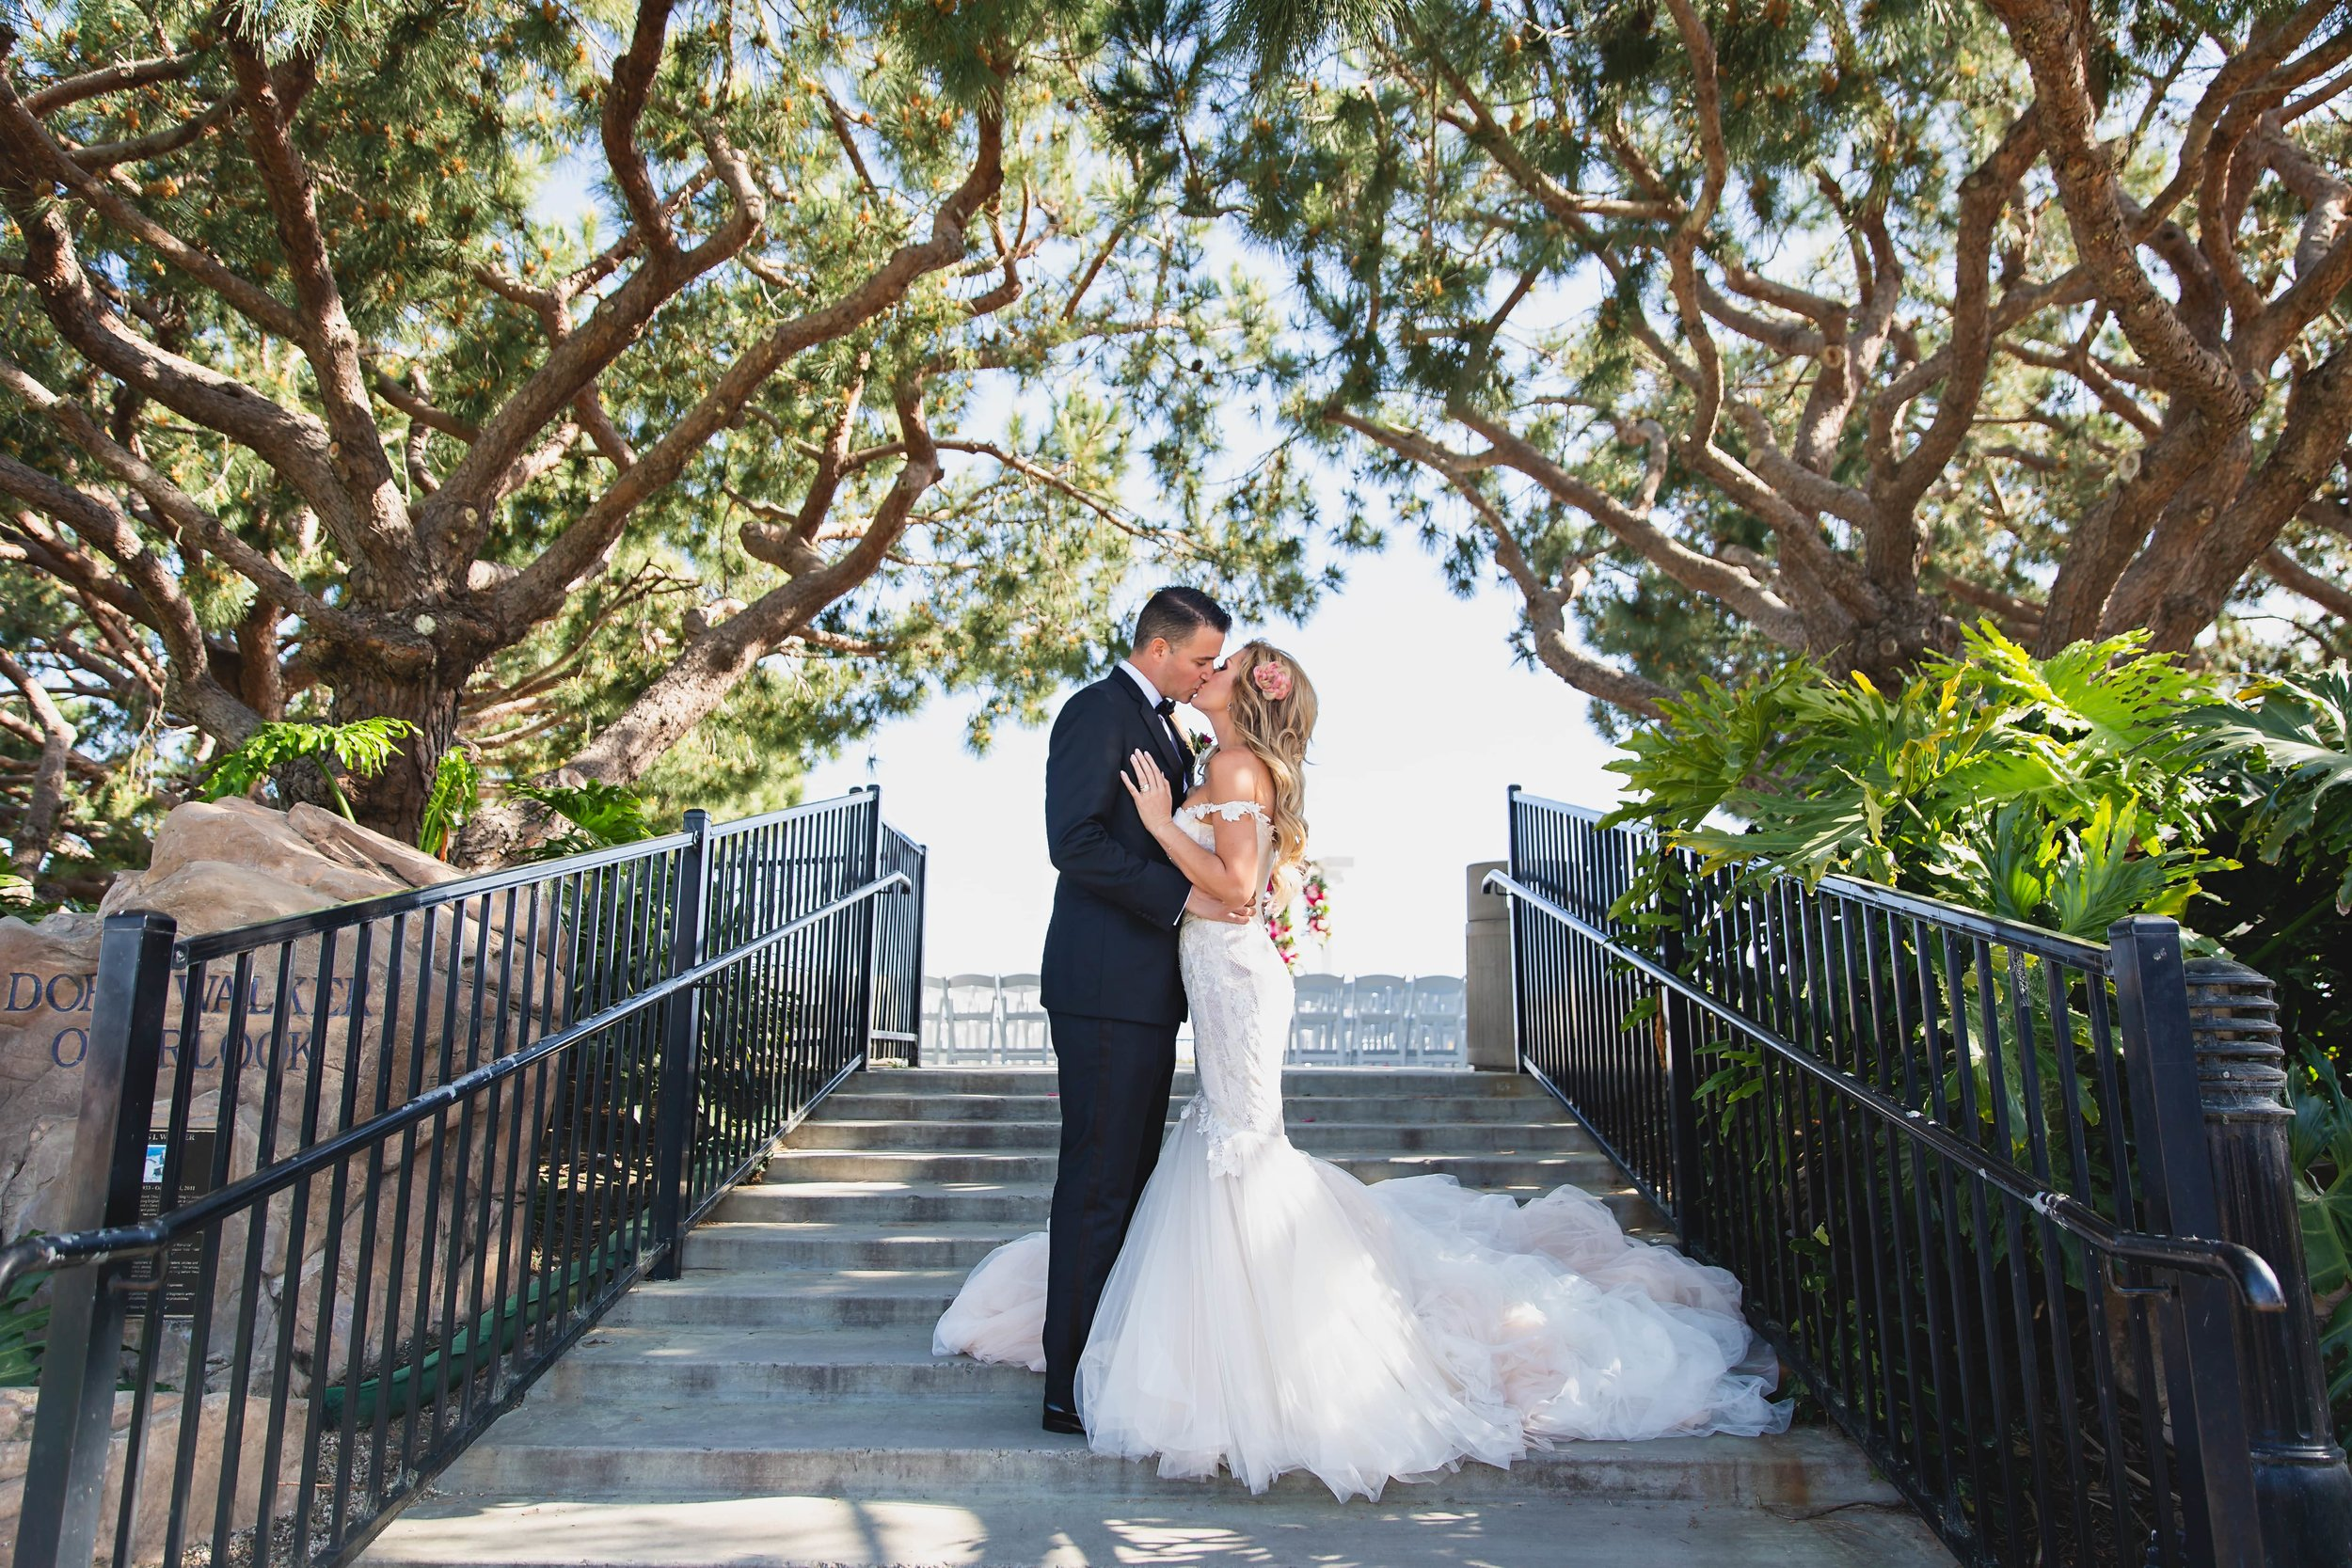 Wedding Photography Packages - Heritage Park, Dana Point, CA - Bride and groom kissing on a steep set of stairs leading to their ceremony location.